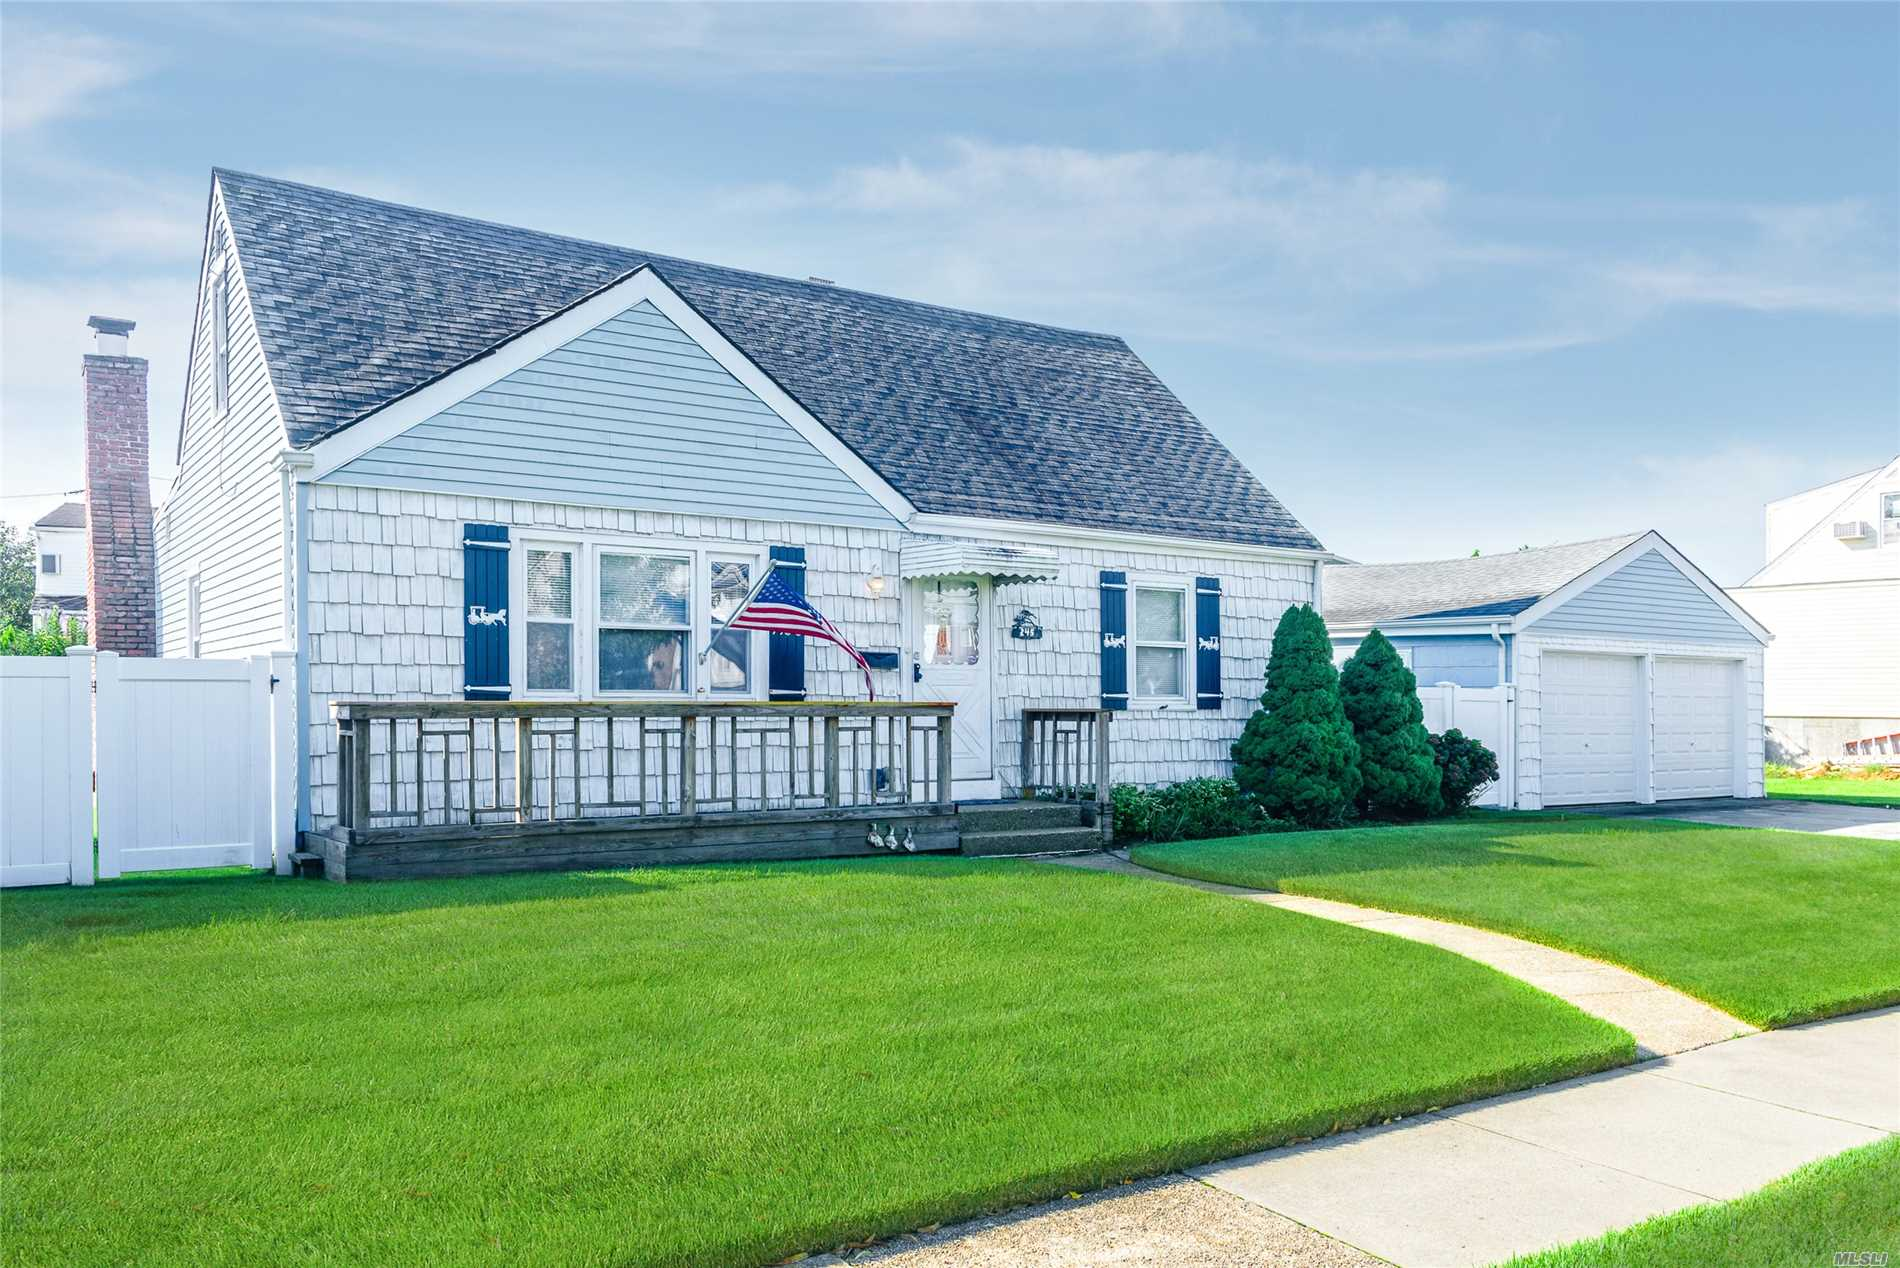 Amazing Cape On Oversized Property! Features: Living Rm, Eat In Kitchen, Den W/Wood Burning Fireplace, Full Bath, Master Bedroom, Laundry Rm/Office, 2 Large Bedrooms, Eaves Storage, Large Rear Deck For Entertaining, Spacious Backyard, 2 Car Garage W/ Private Driveway. Come In And Make It Yours!